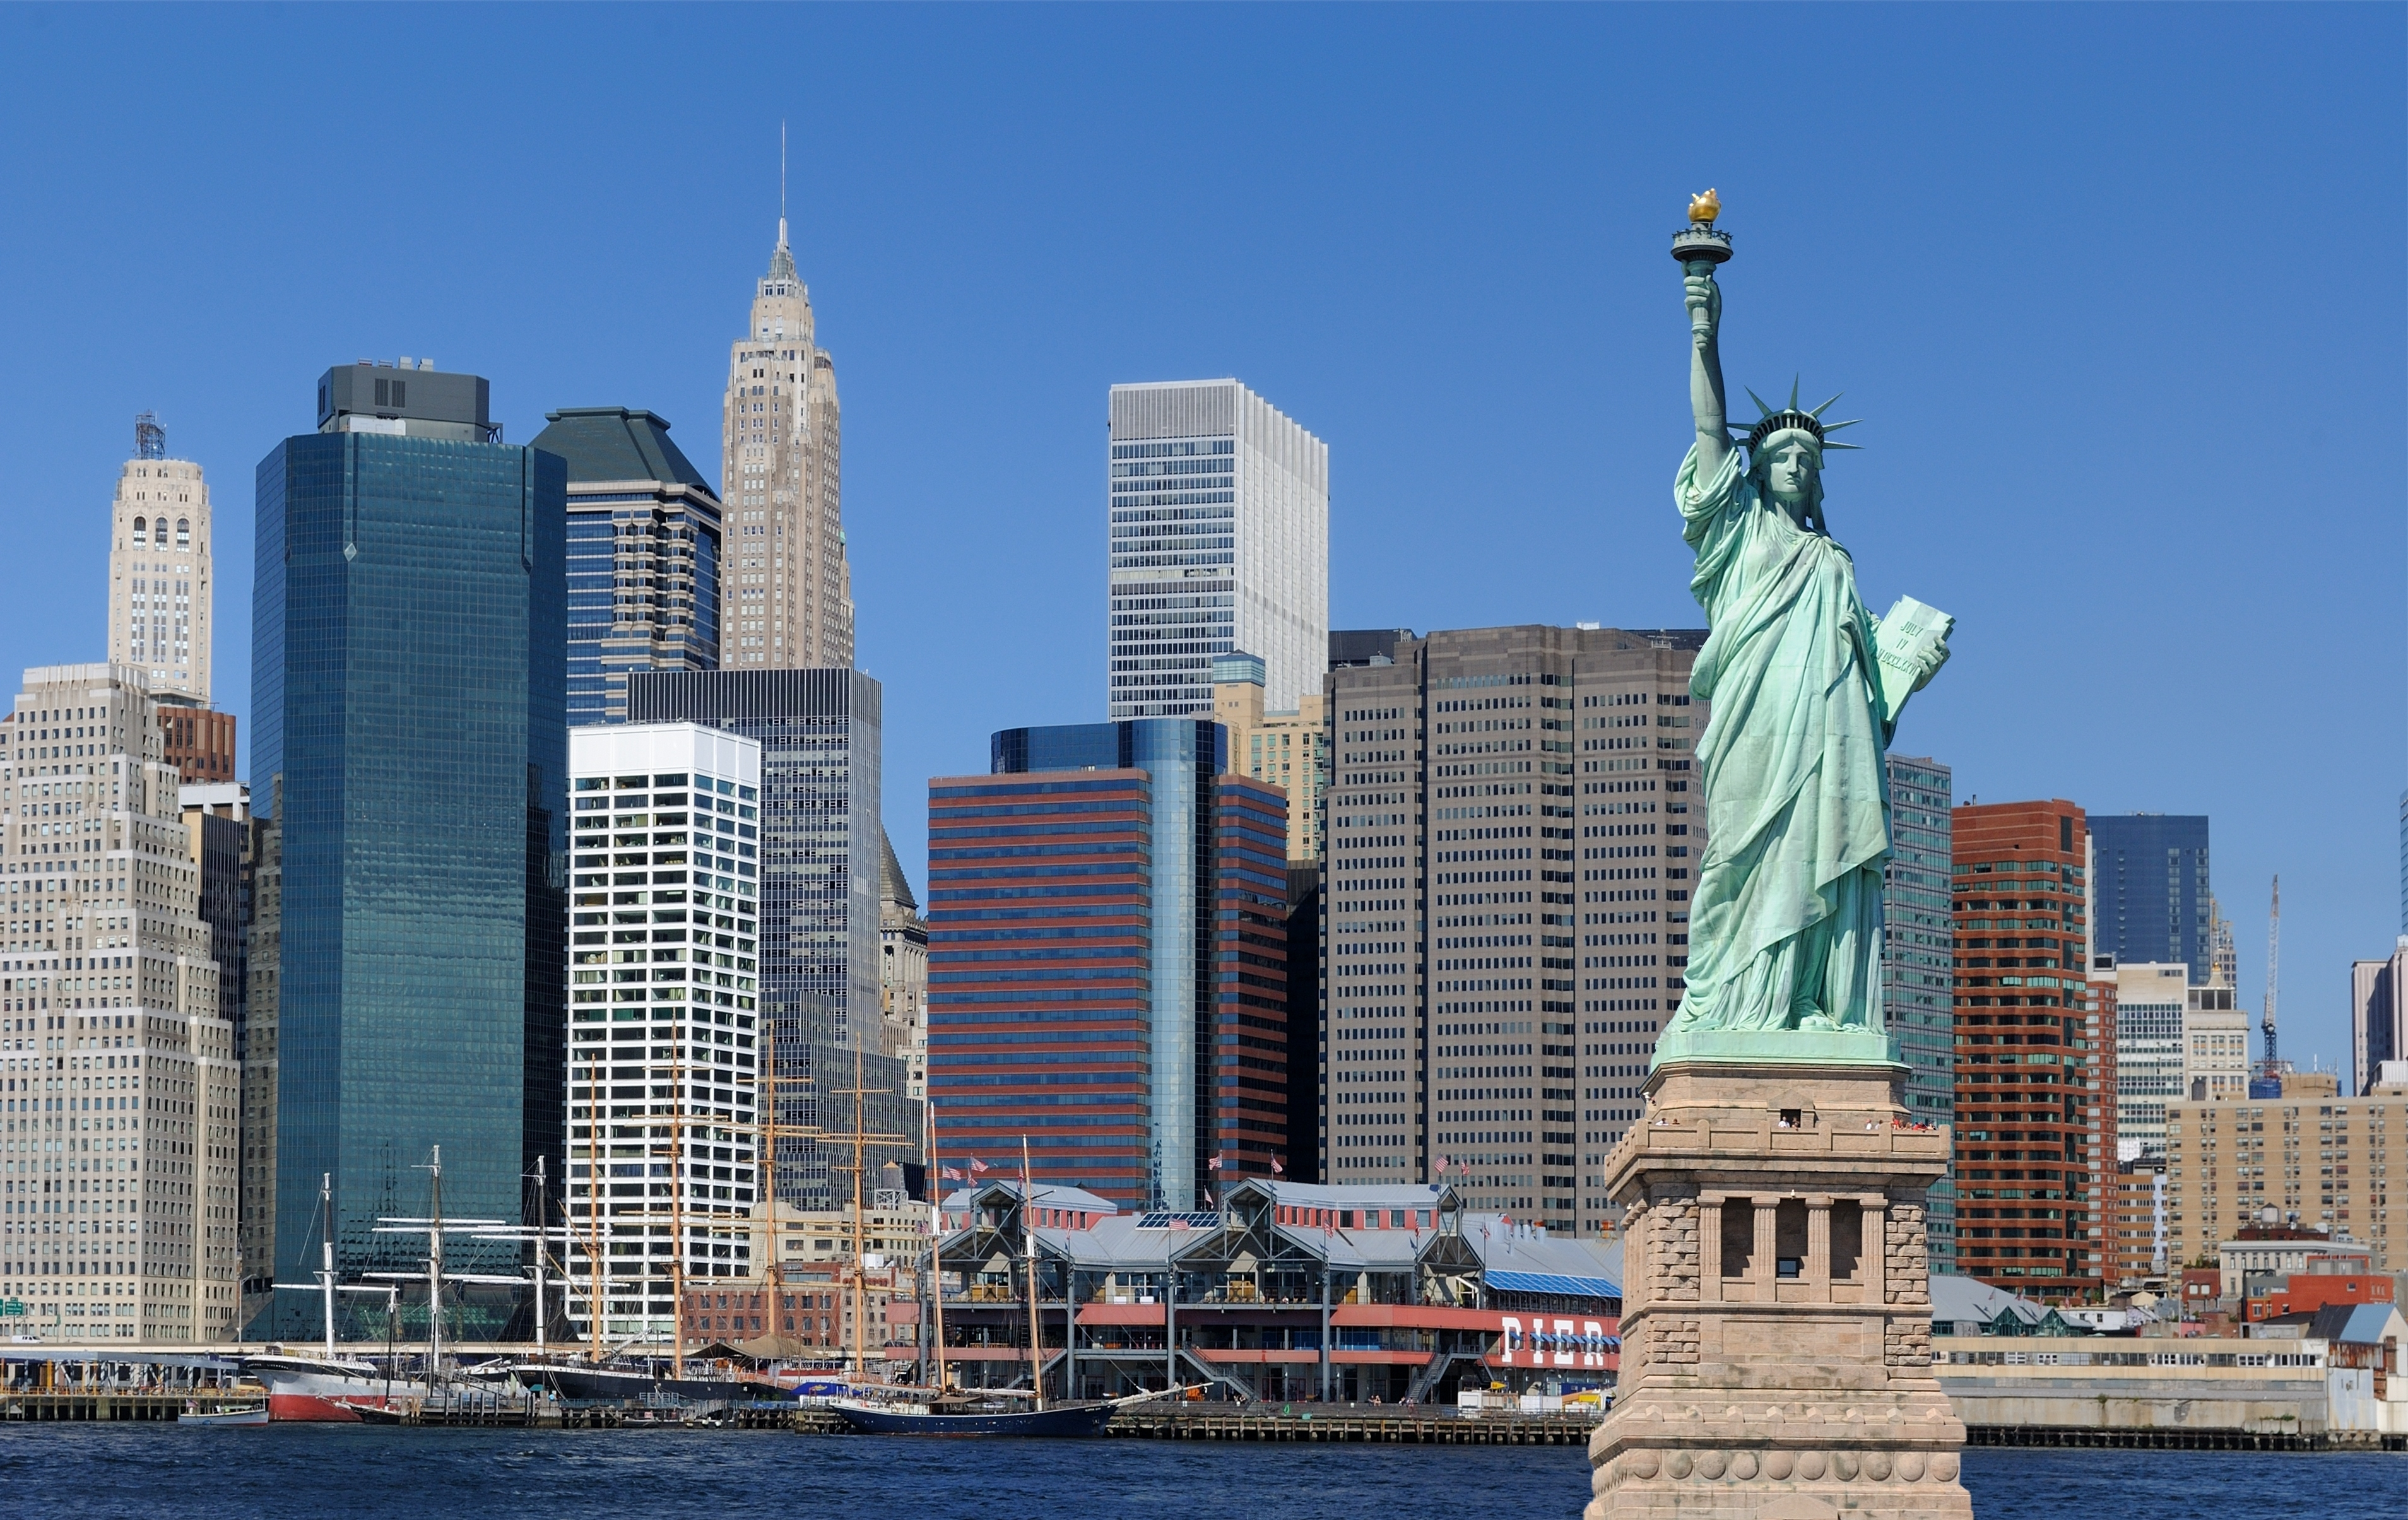 statue of liberty hd wallpapers in new york. - media file